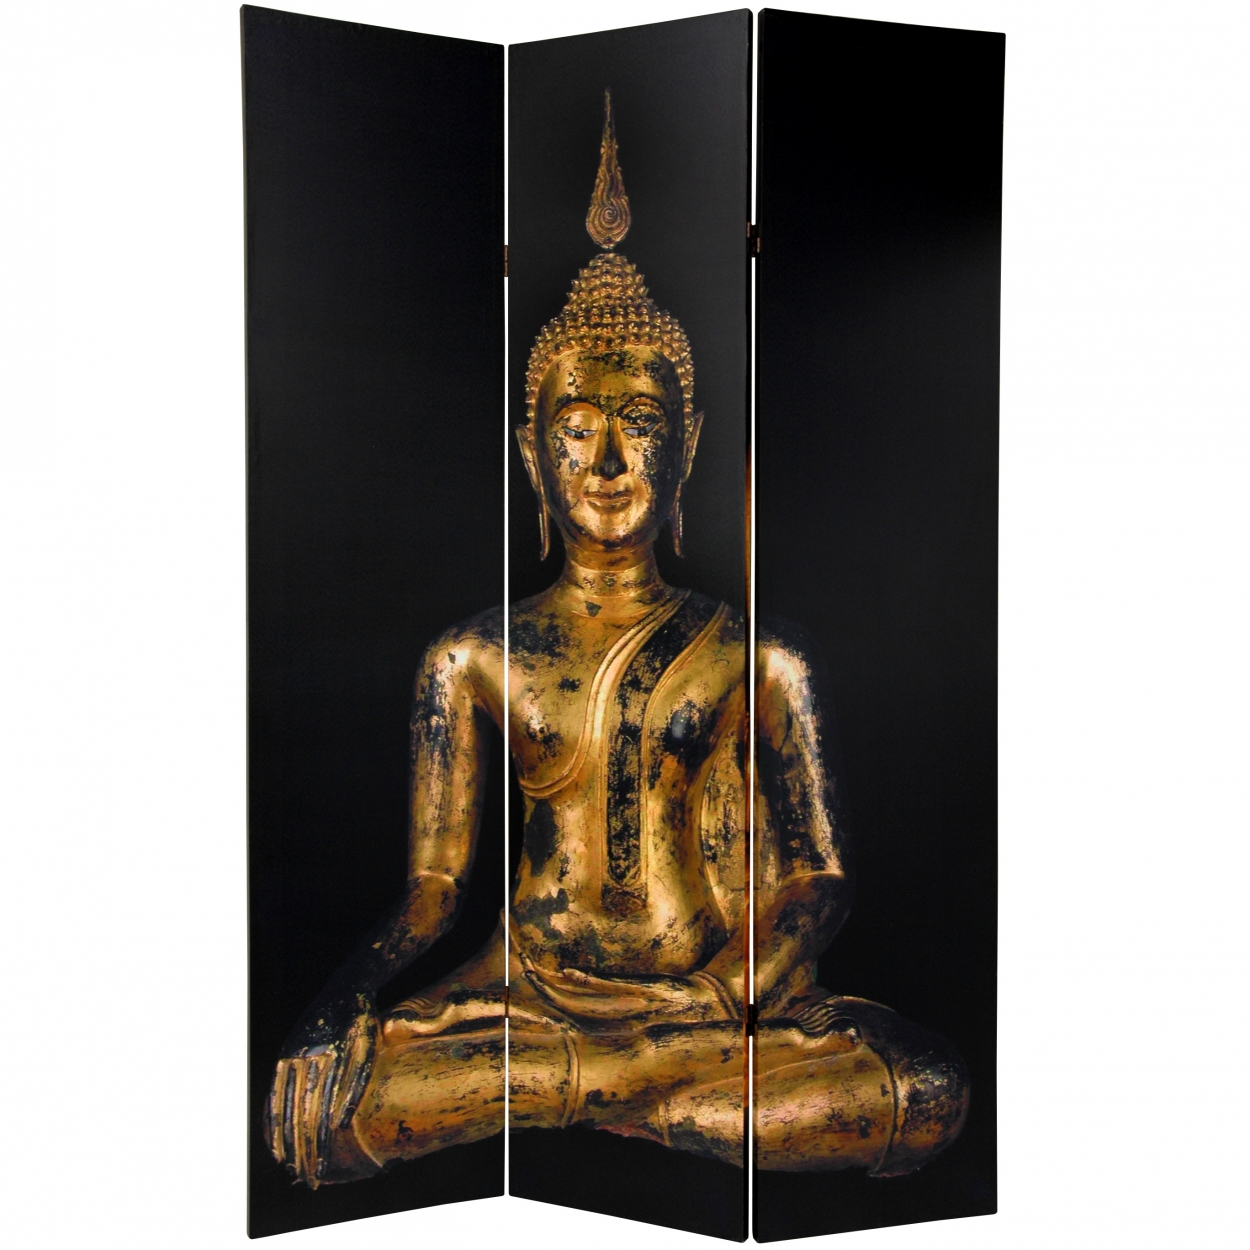 Buy 6 ft Tall Double Sided Thai Buddha Room Divider Online CAN